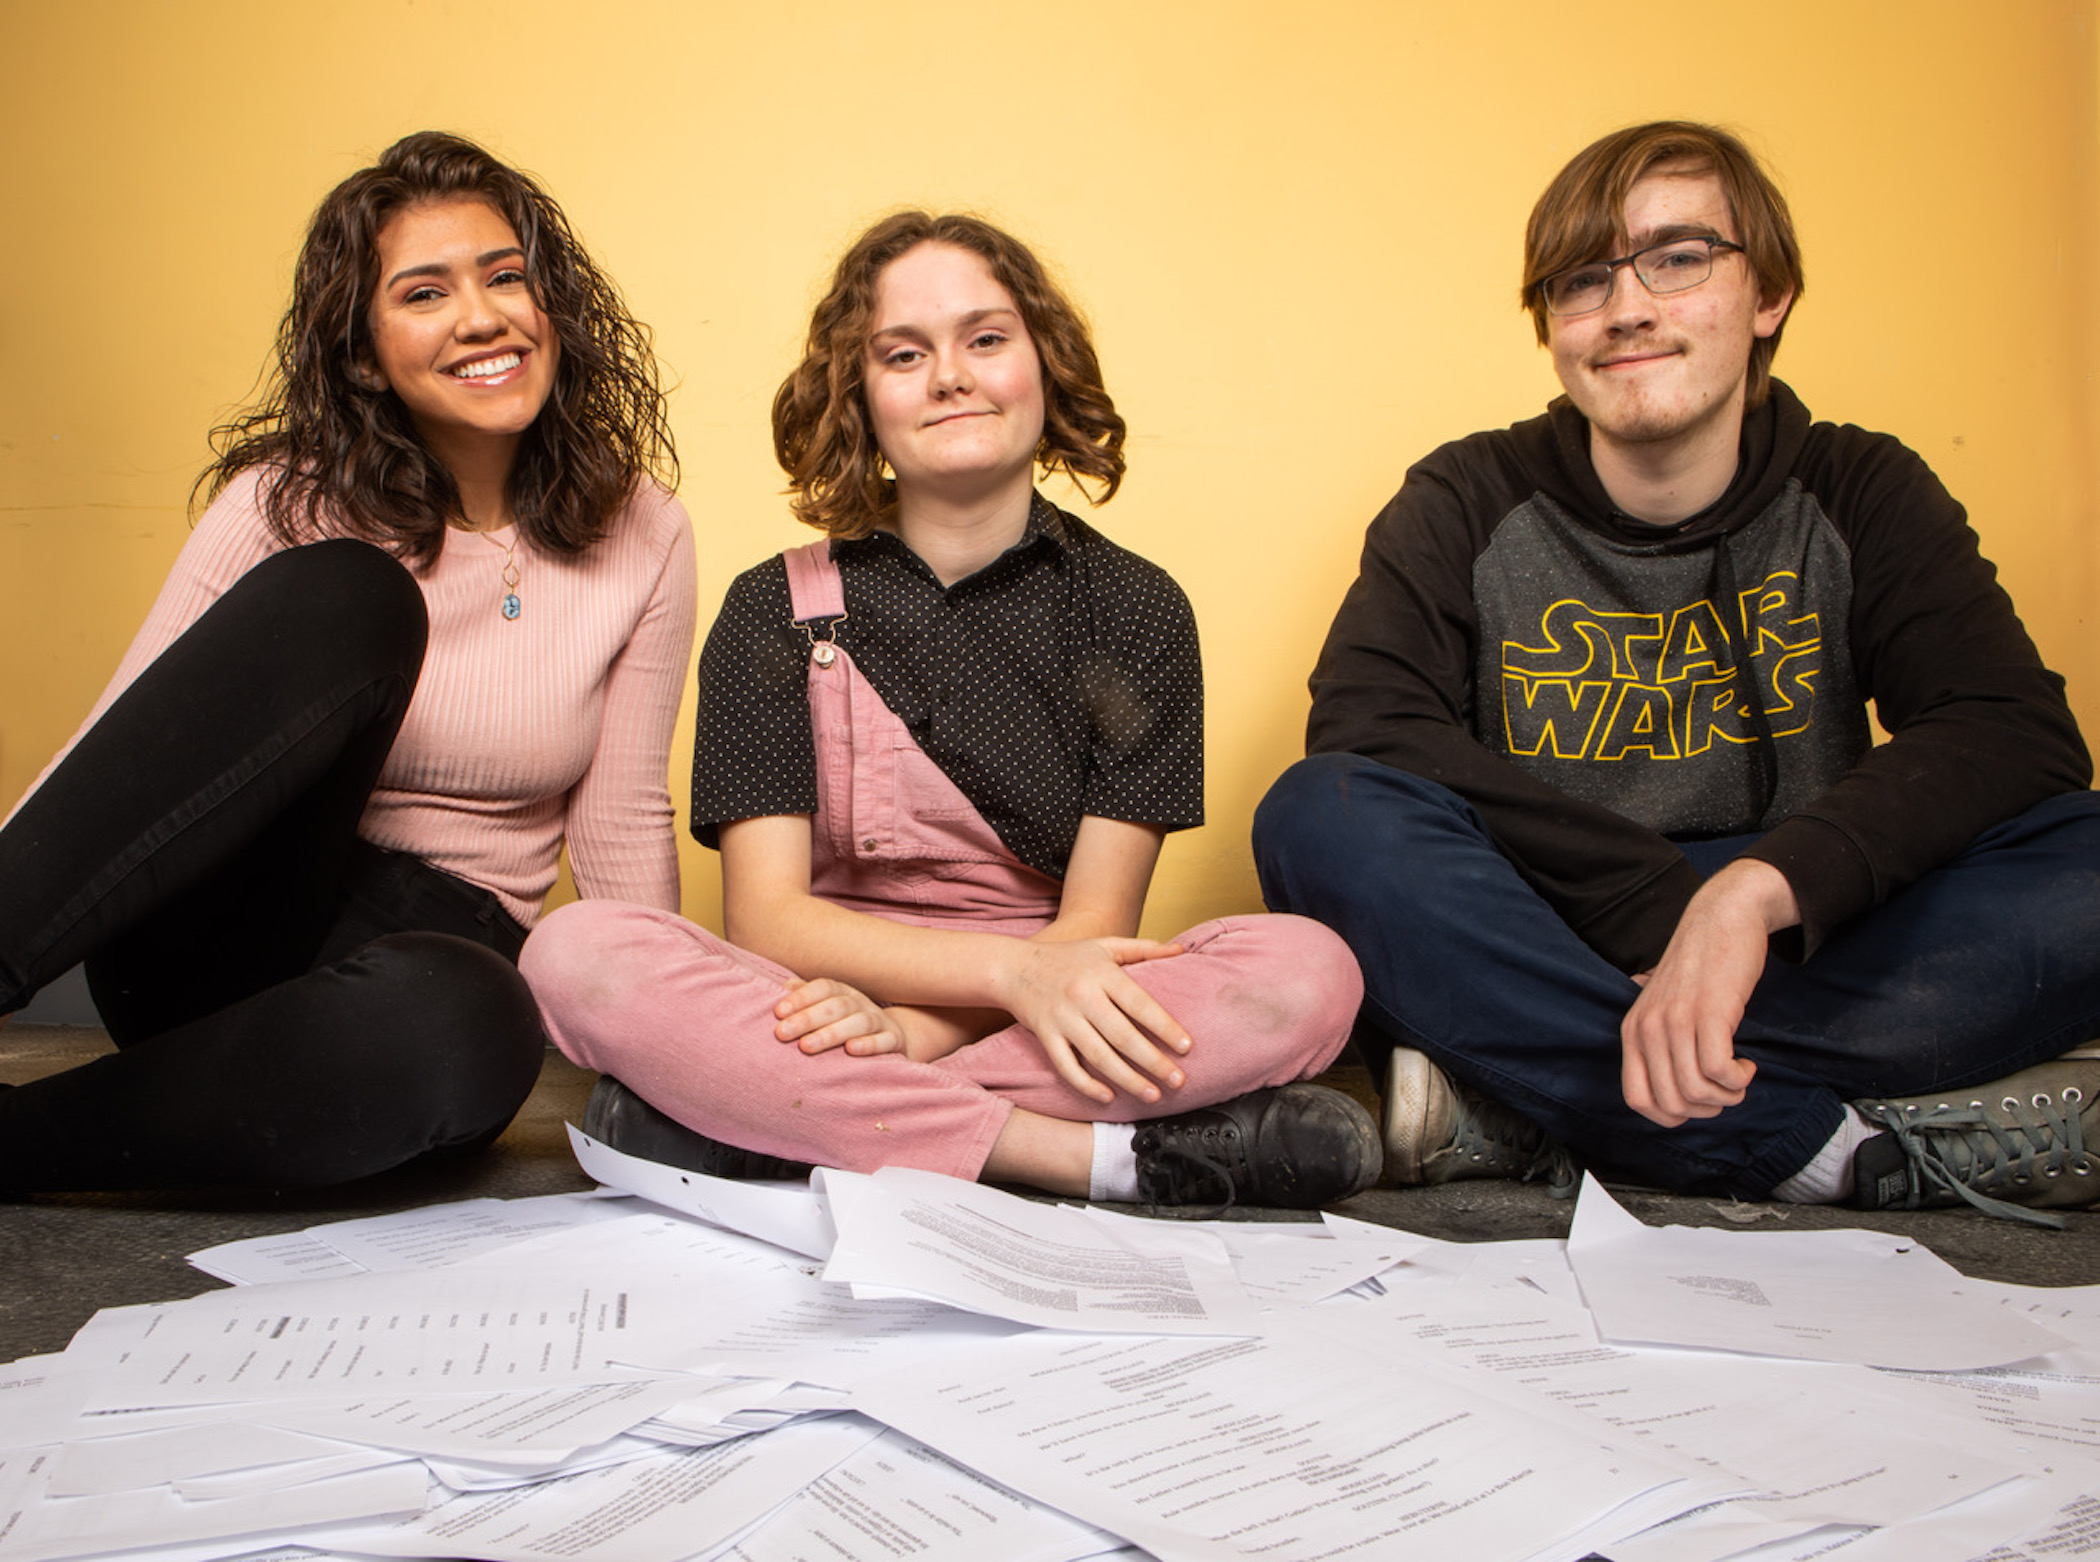 PlaywrightsAngelina Davila, Henry Williams and Reba Brennan will have their work featured at the annual Young Playwrights Festival.